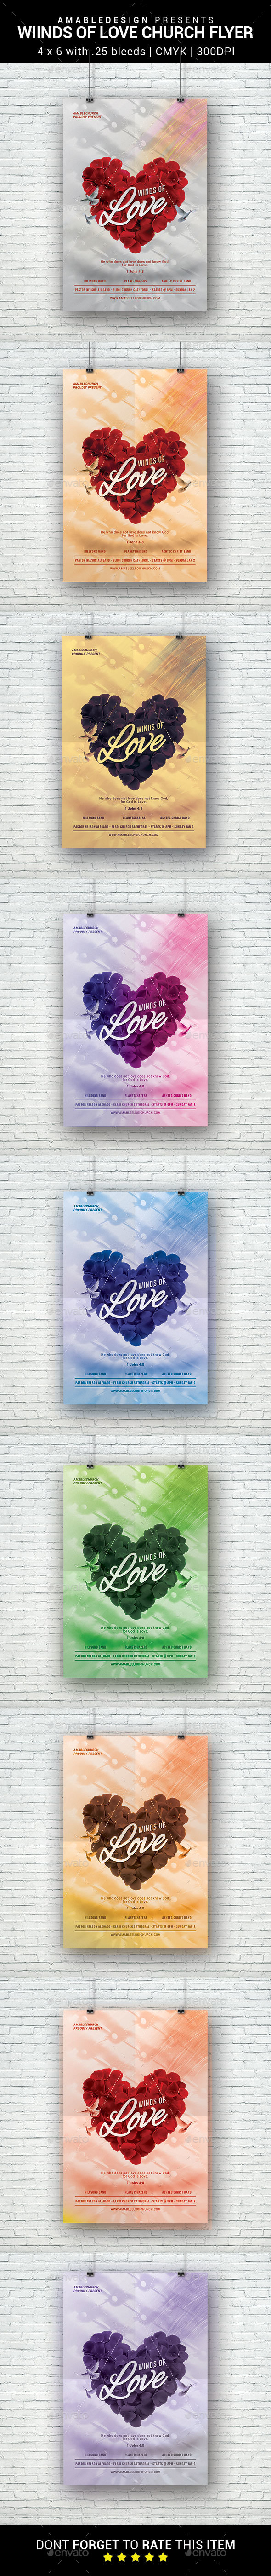 Winds of Love Church Flyer - Church Flyers